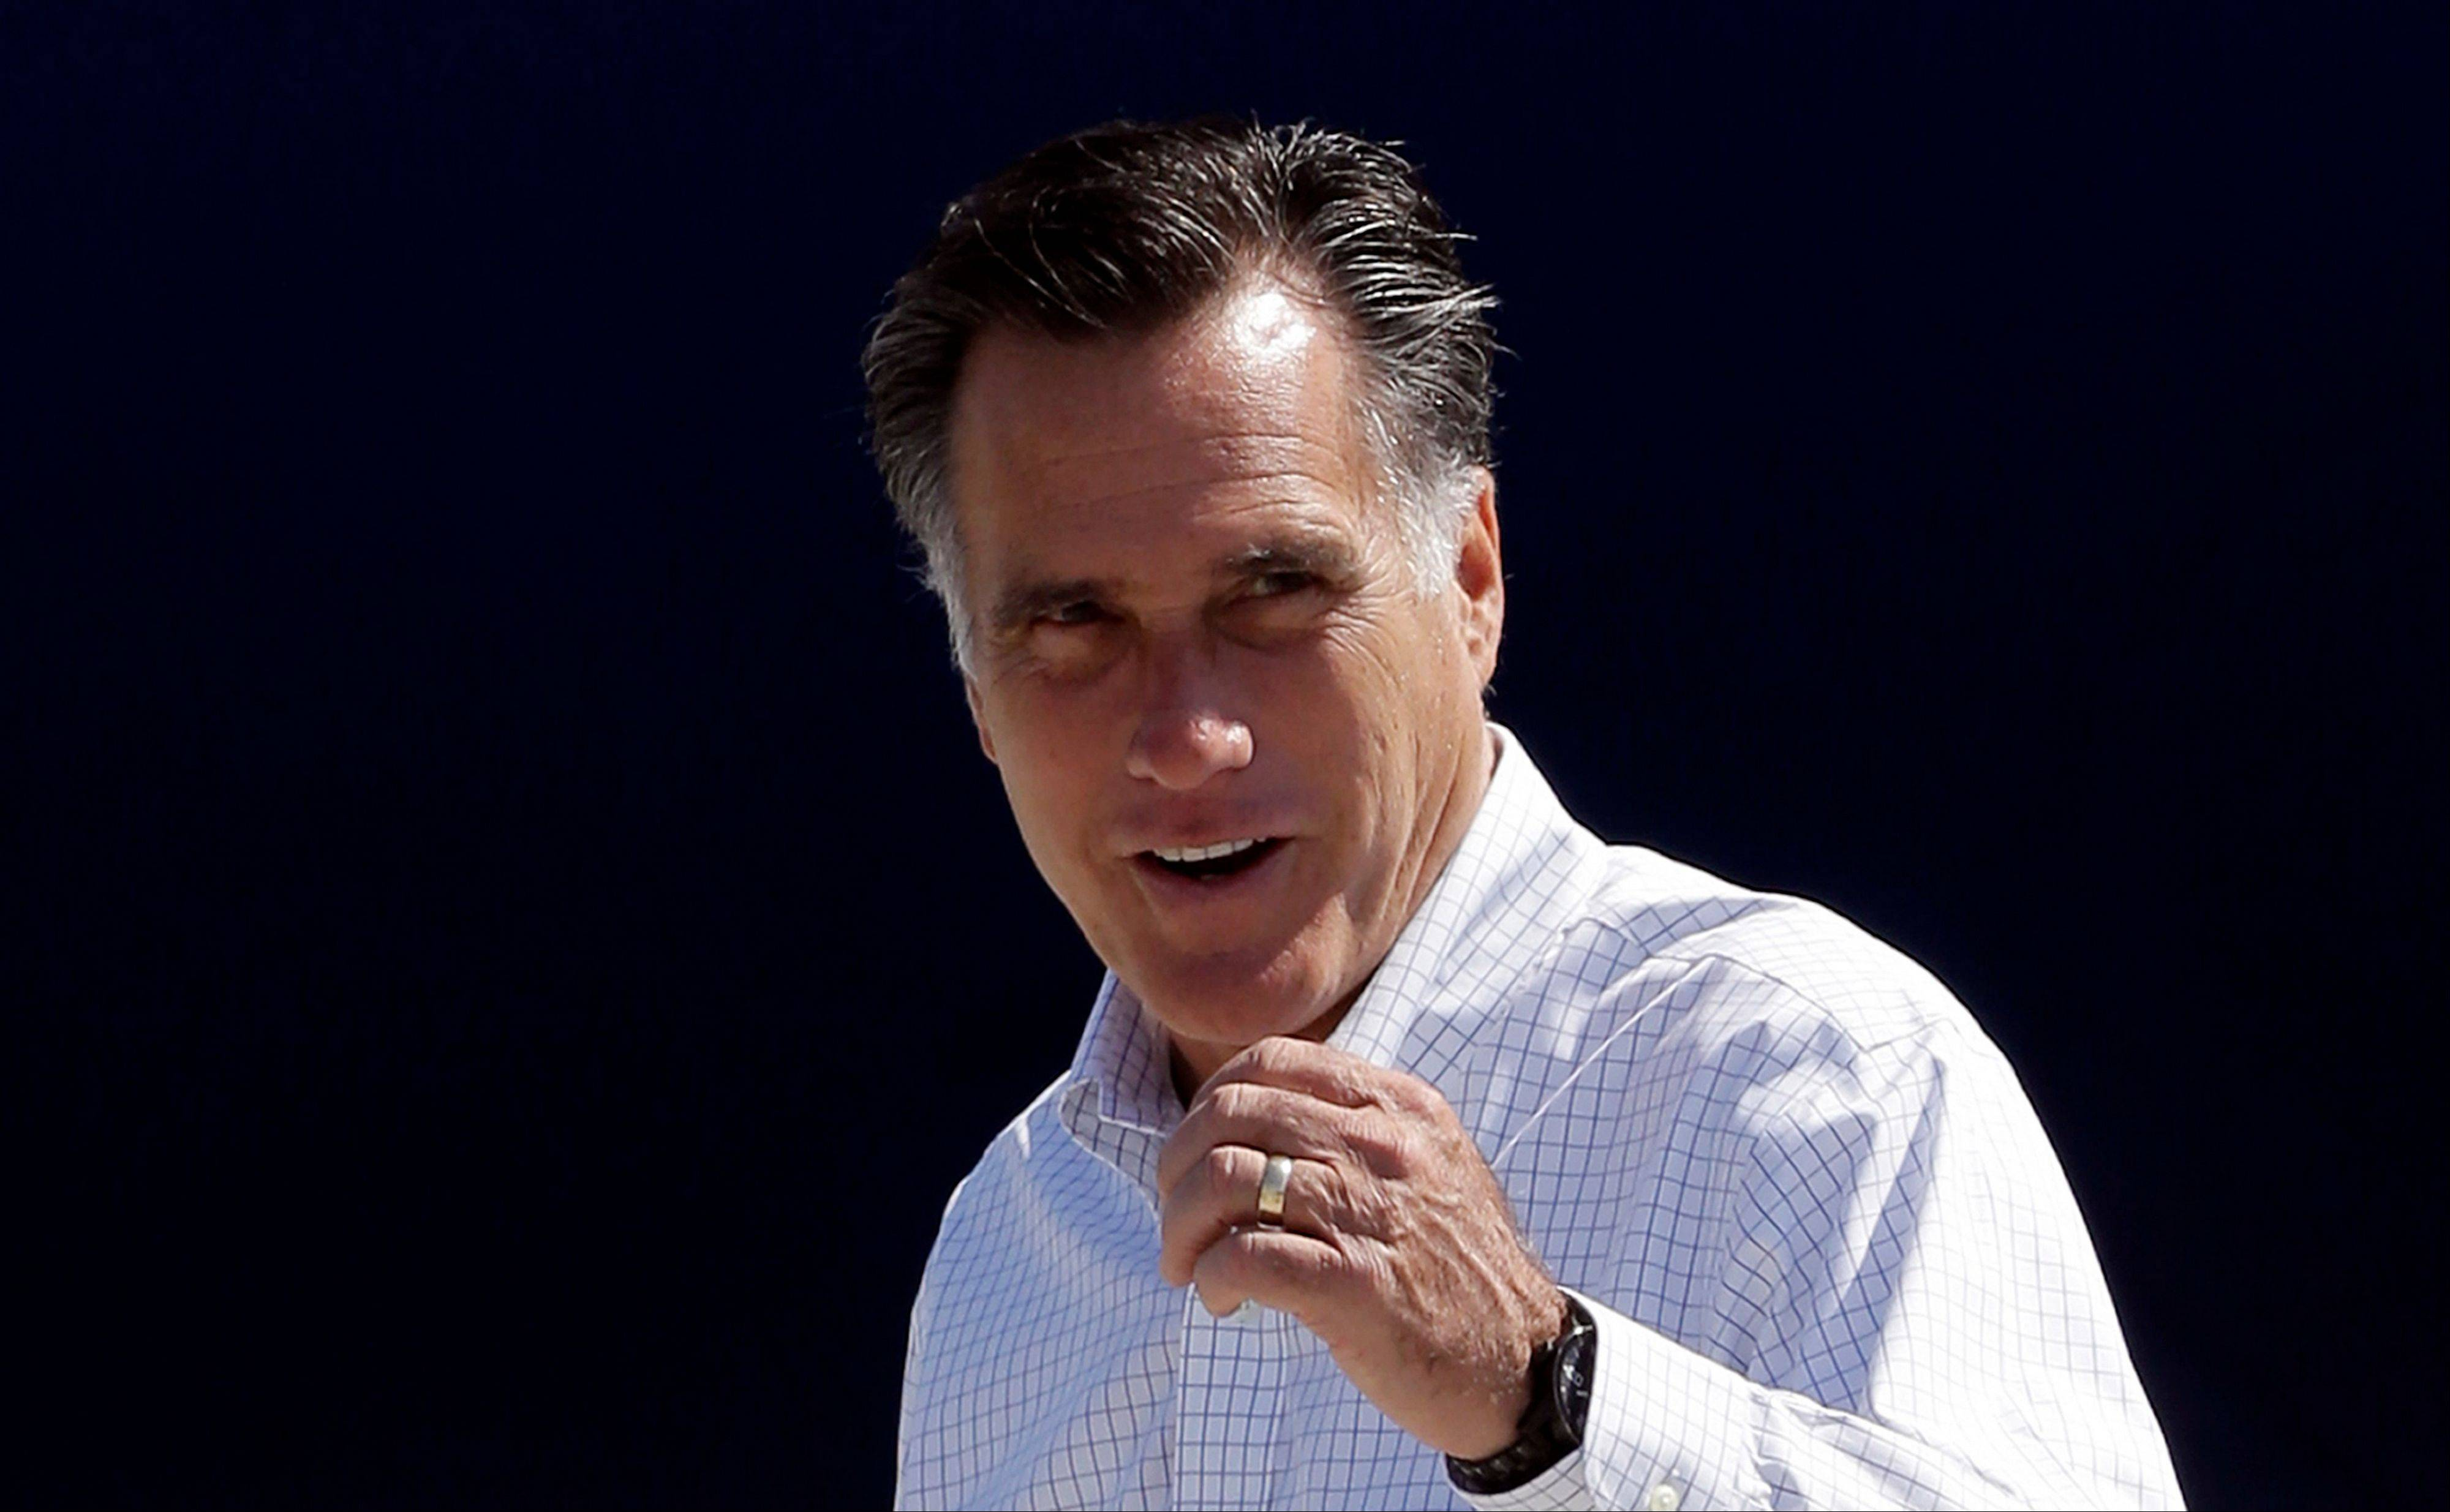 Republican presidential candidate and former Massachusetts Gov. Mitt Romney gets ready to board his campaign plane in Los Angeles, Sunday, Sept. 23, 2012. (AP Photo/Charles Dharapak)